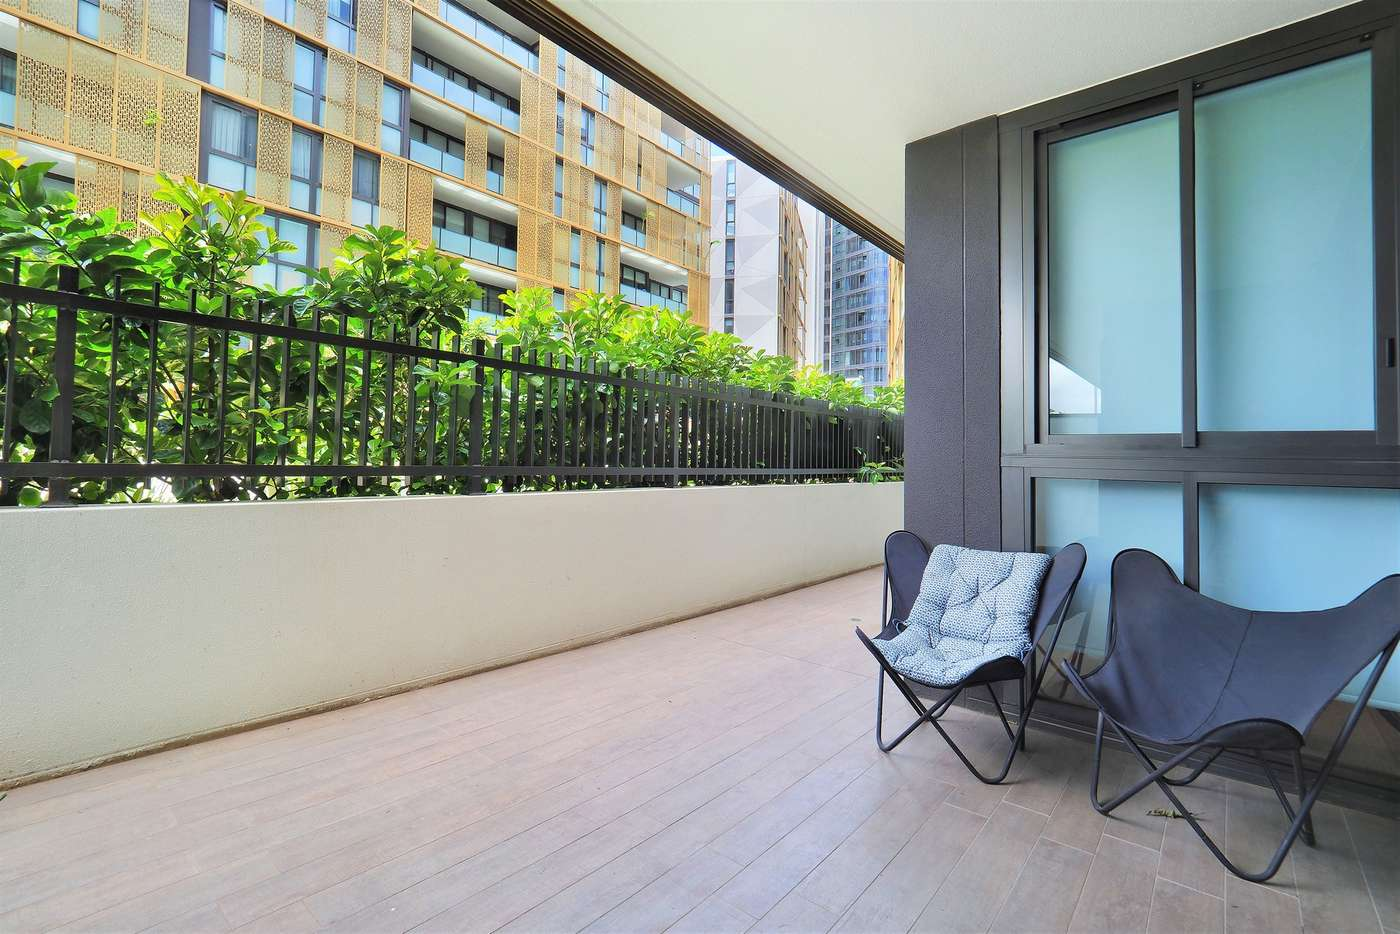 Main view of Homely apartment listing, A206/1 Burroway Road, Wentworth Point NSW 2127